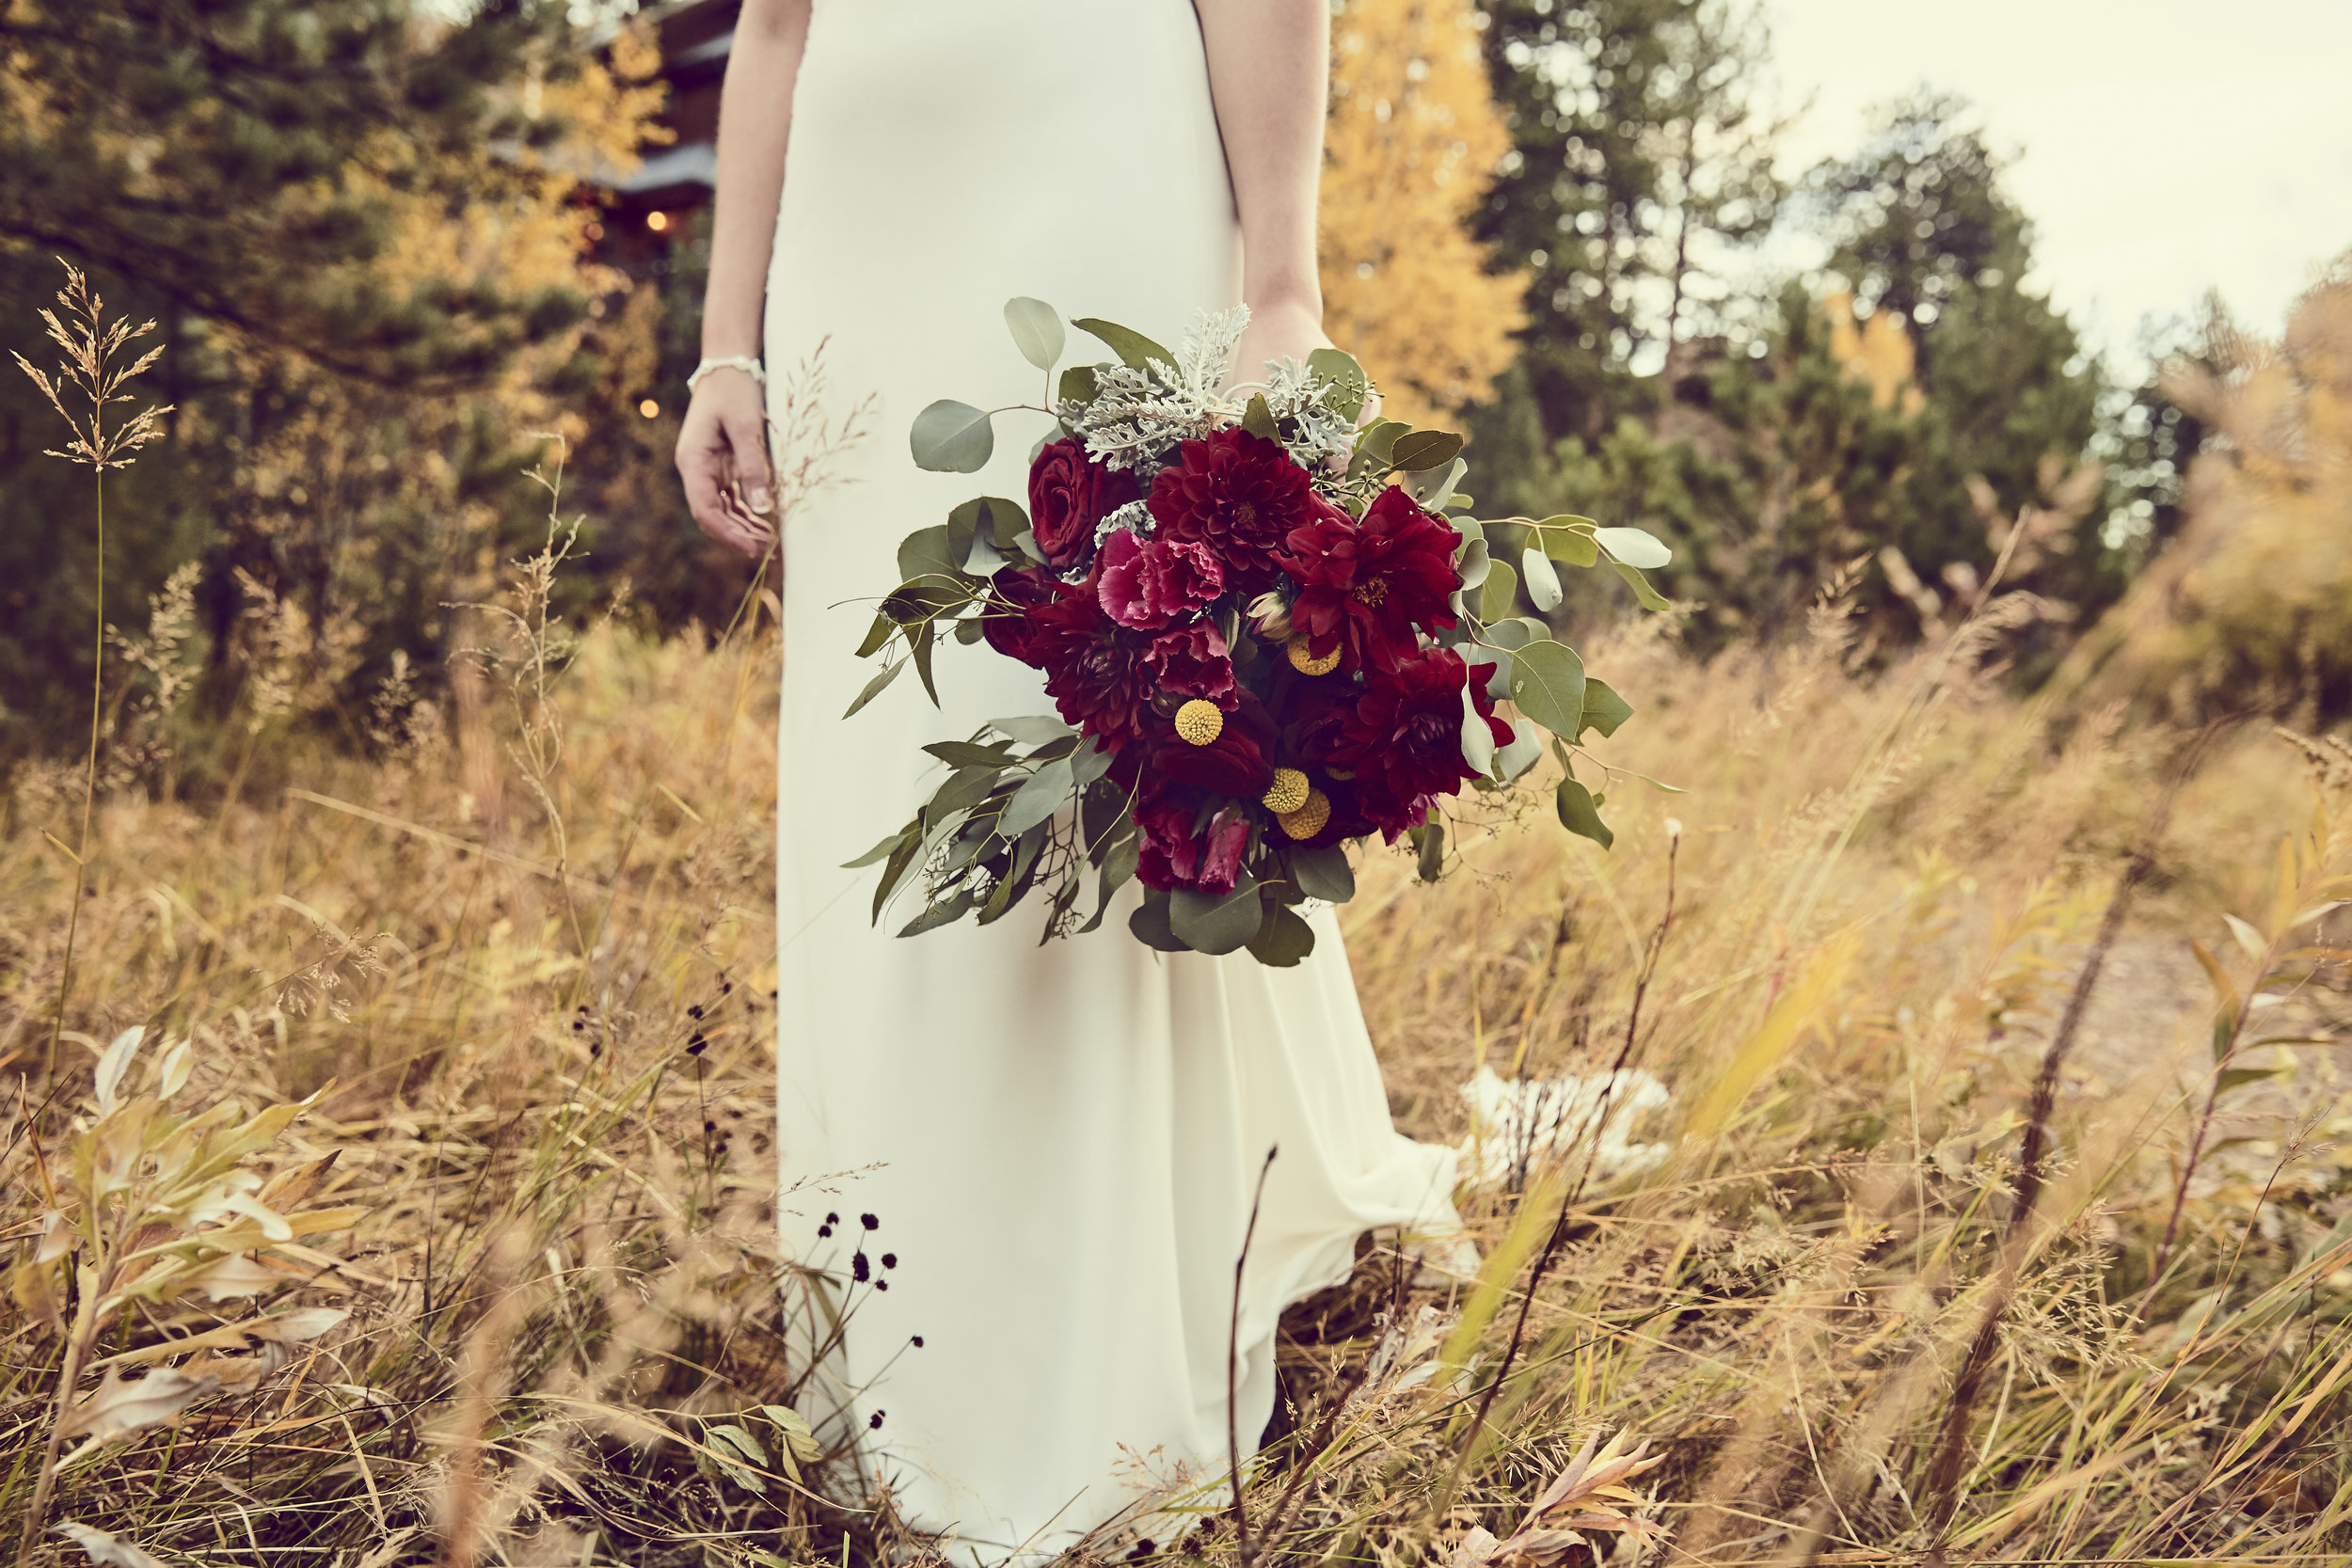 Estes Park AirBnB Wedding - Fall Colors | Pears | Fall River Lodge | Vintage Hair Pin